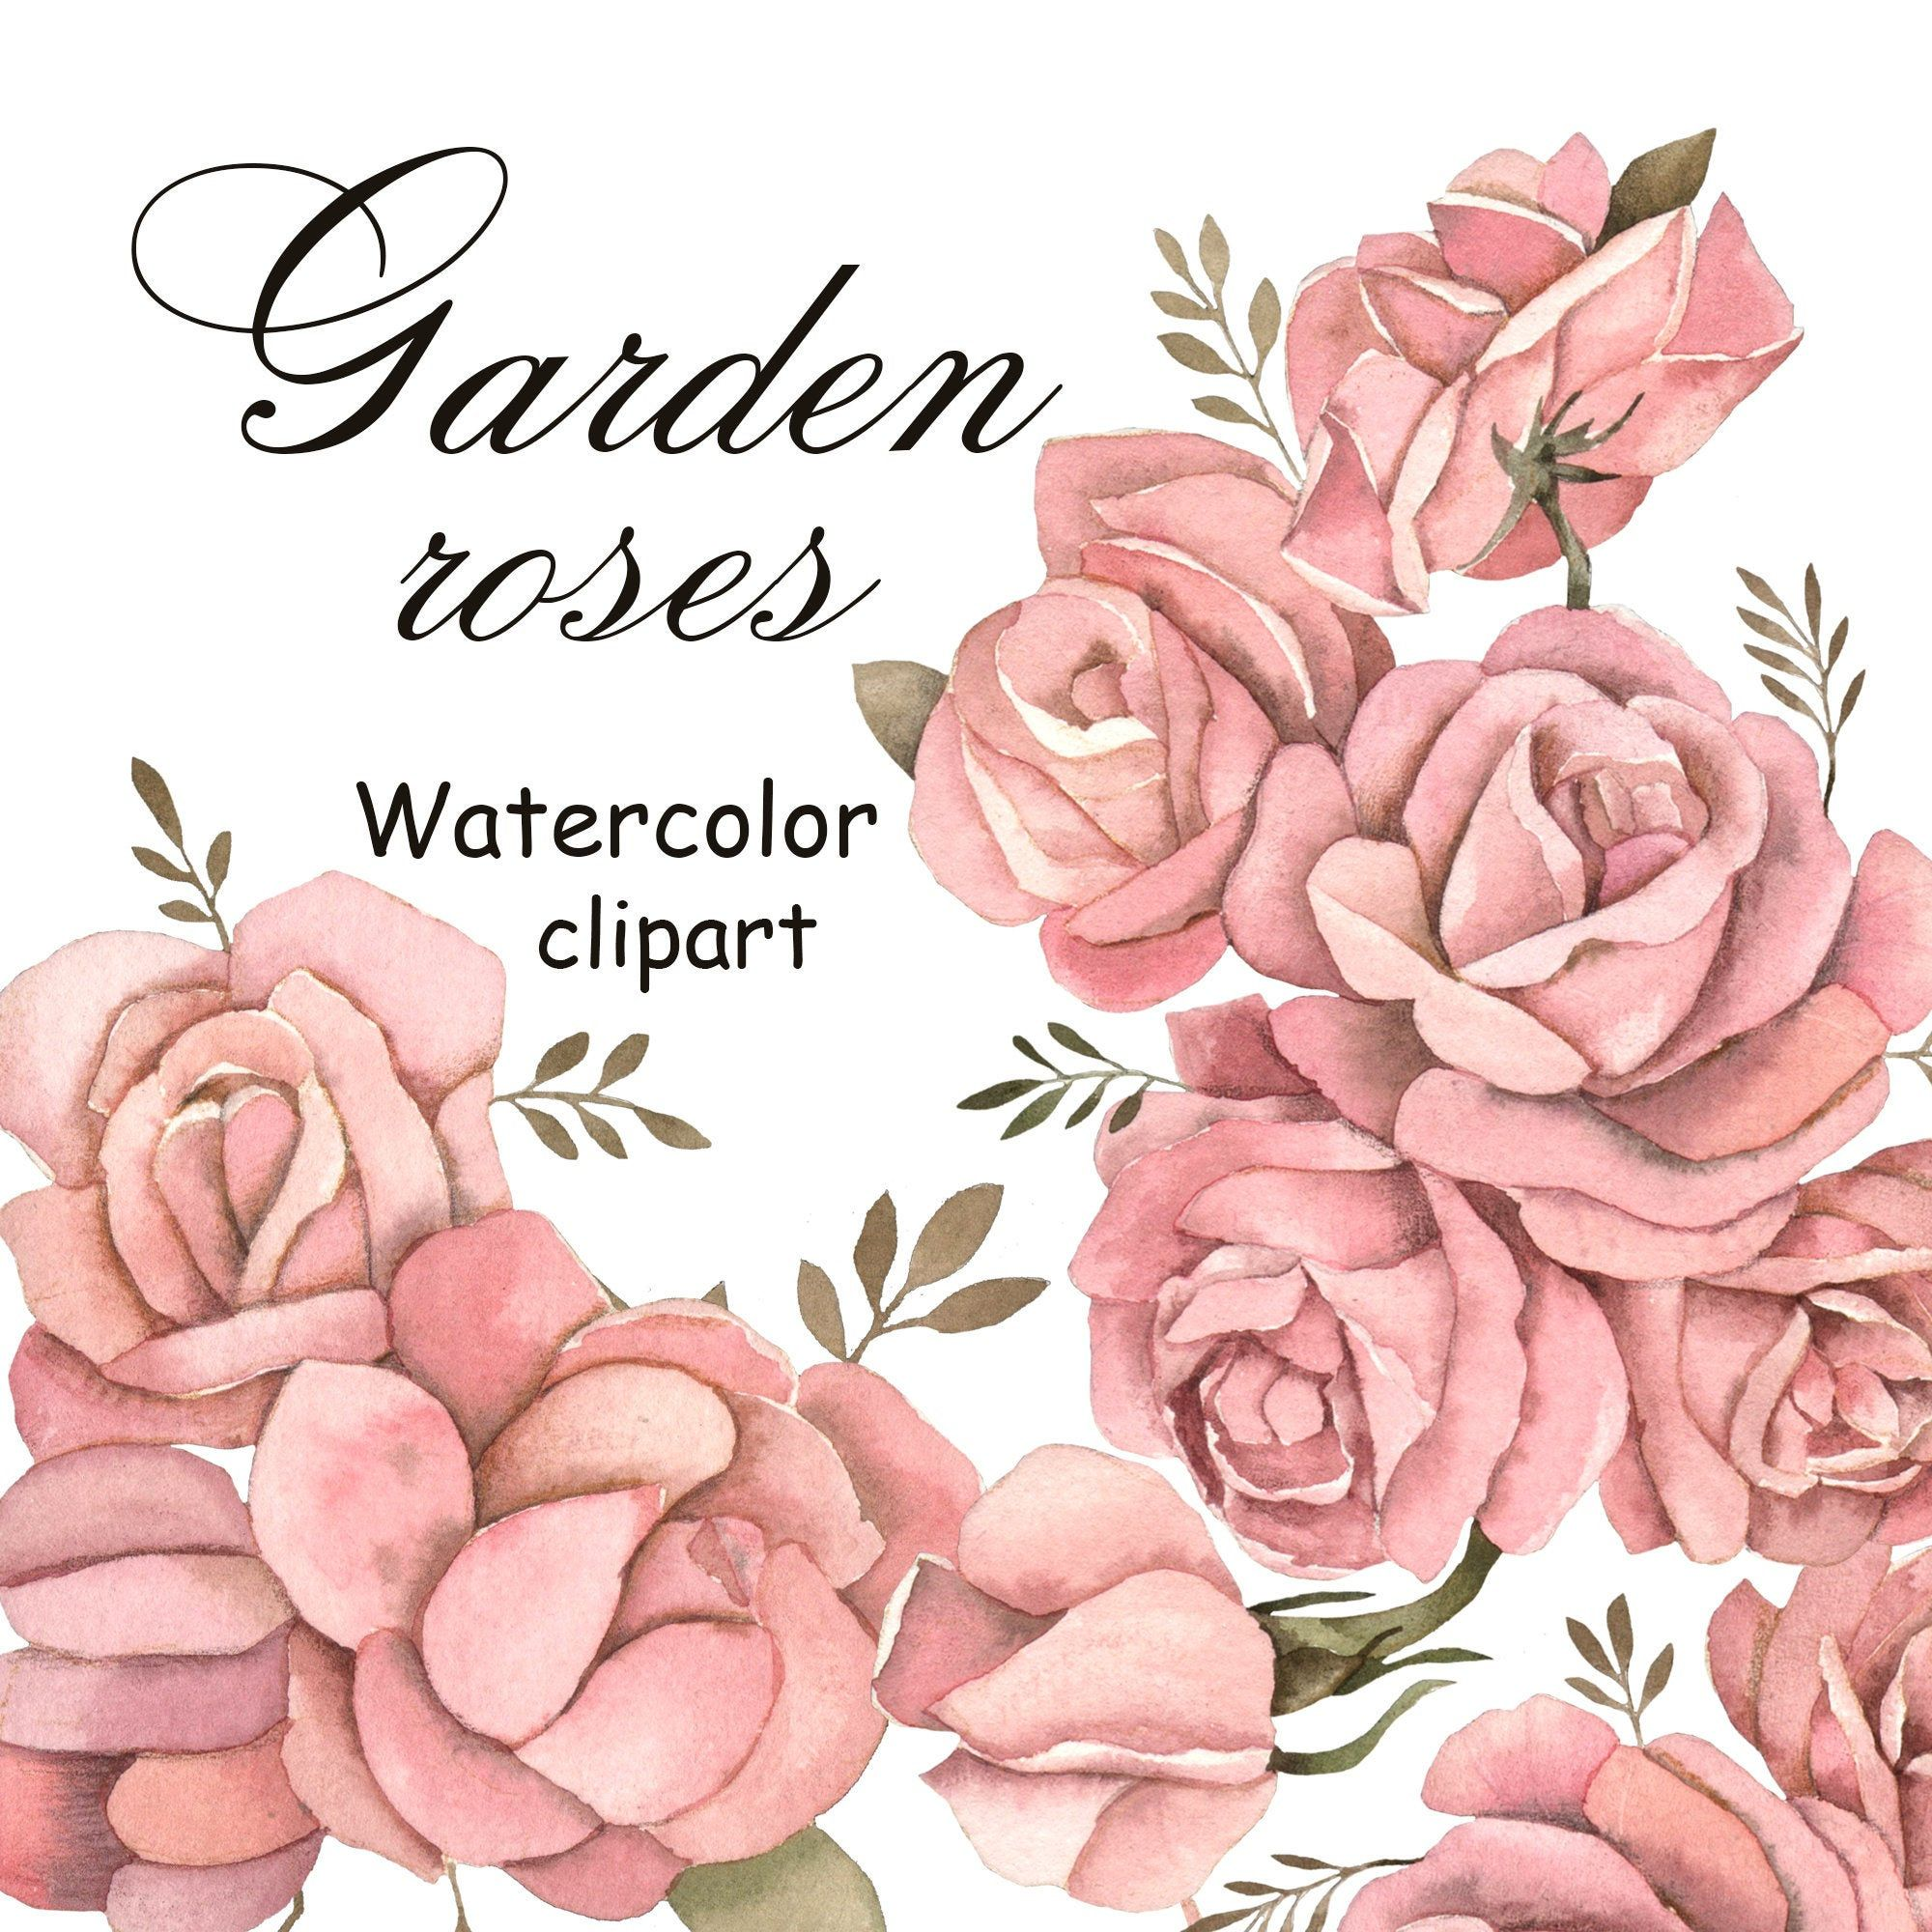 Roses Watercolor Watercolor Flowers Clipart Wedding Design Etsy In 2021 Watercolor Flowers Clip Art Botanical Flowers